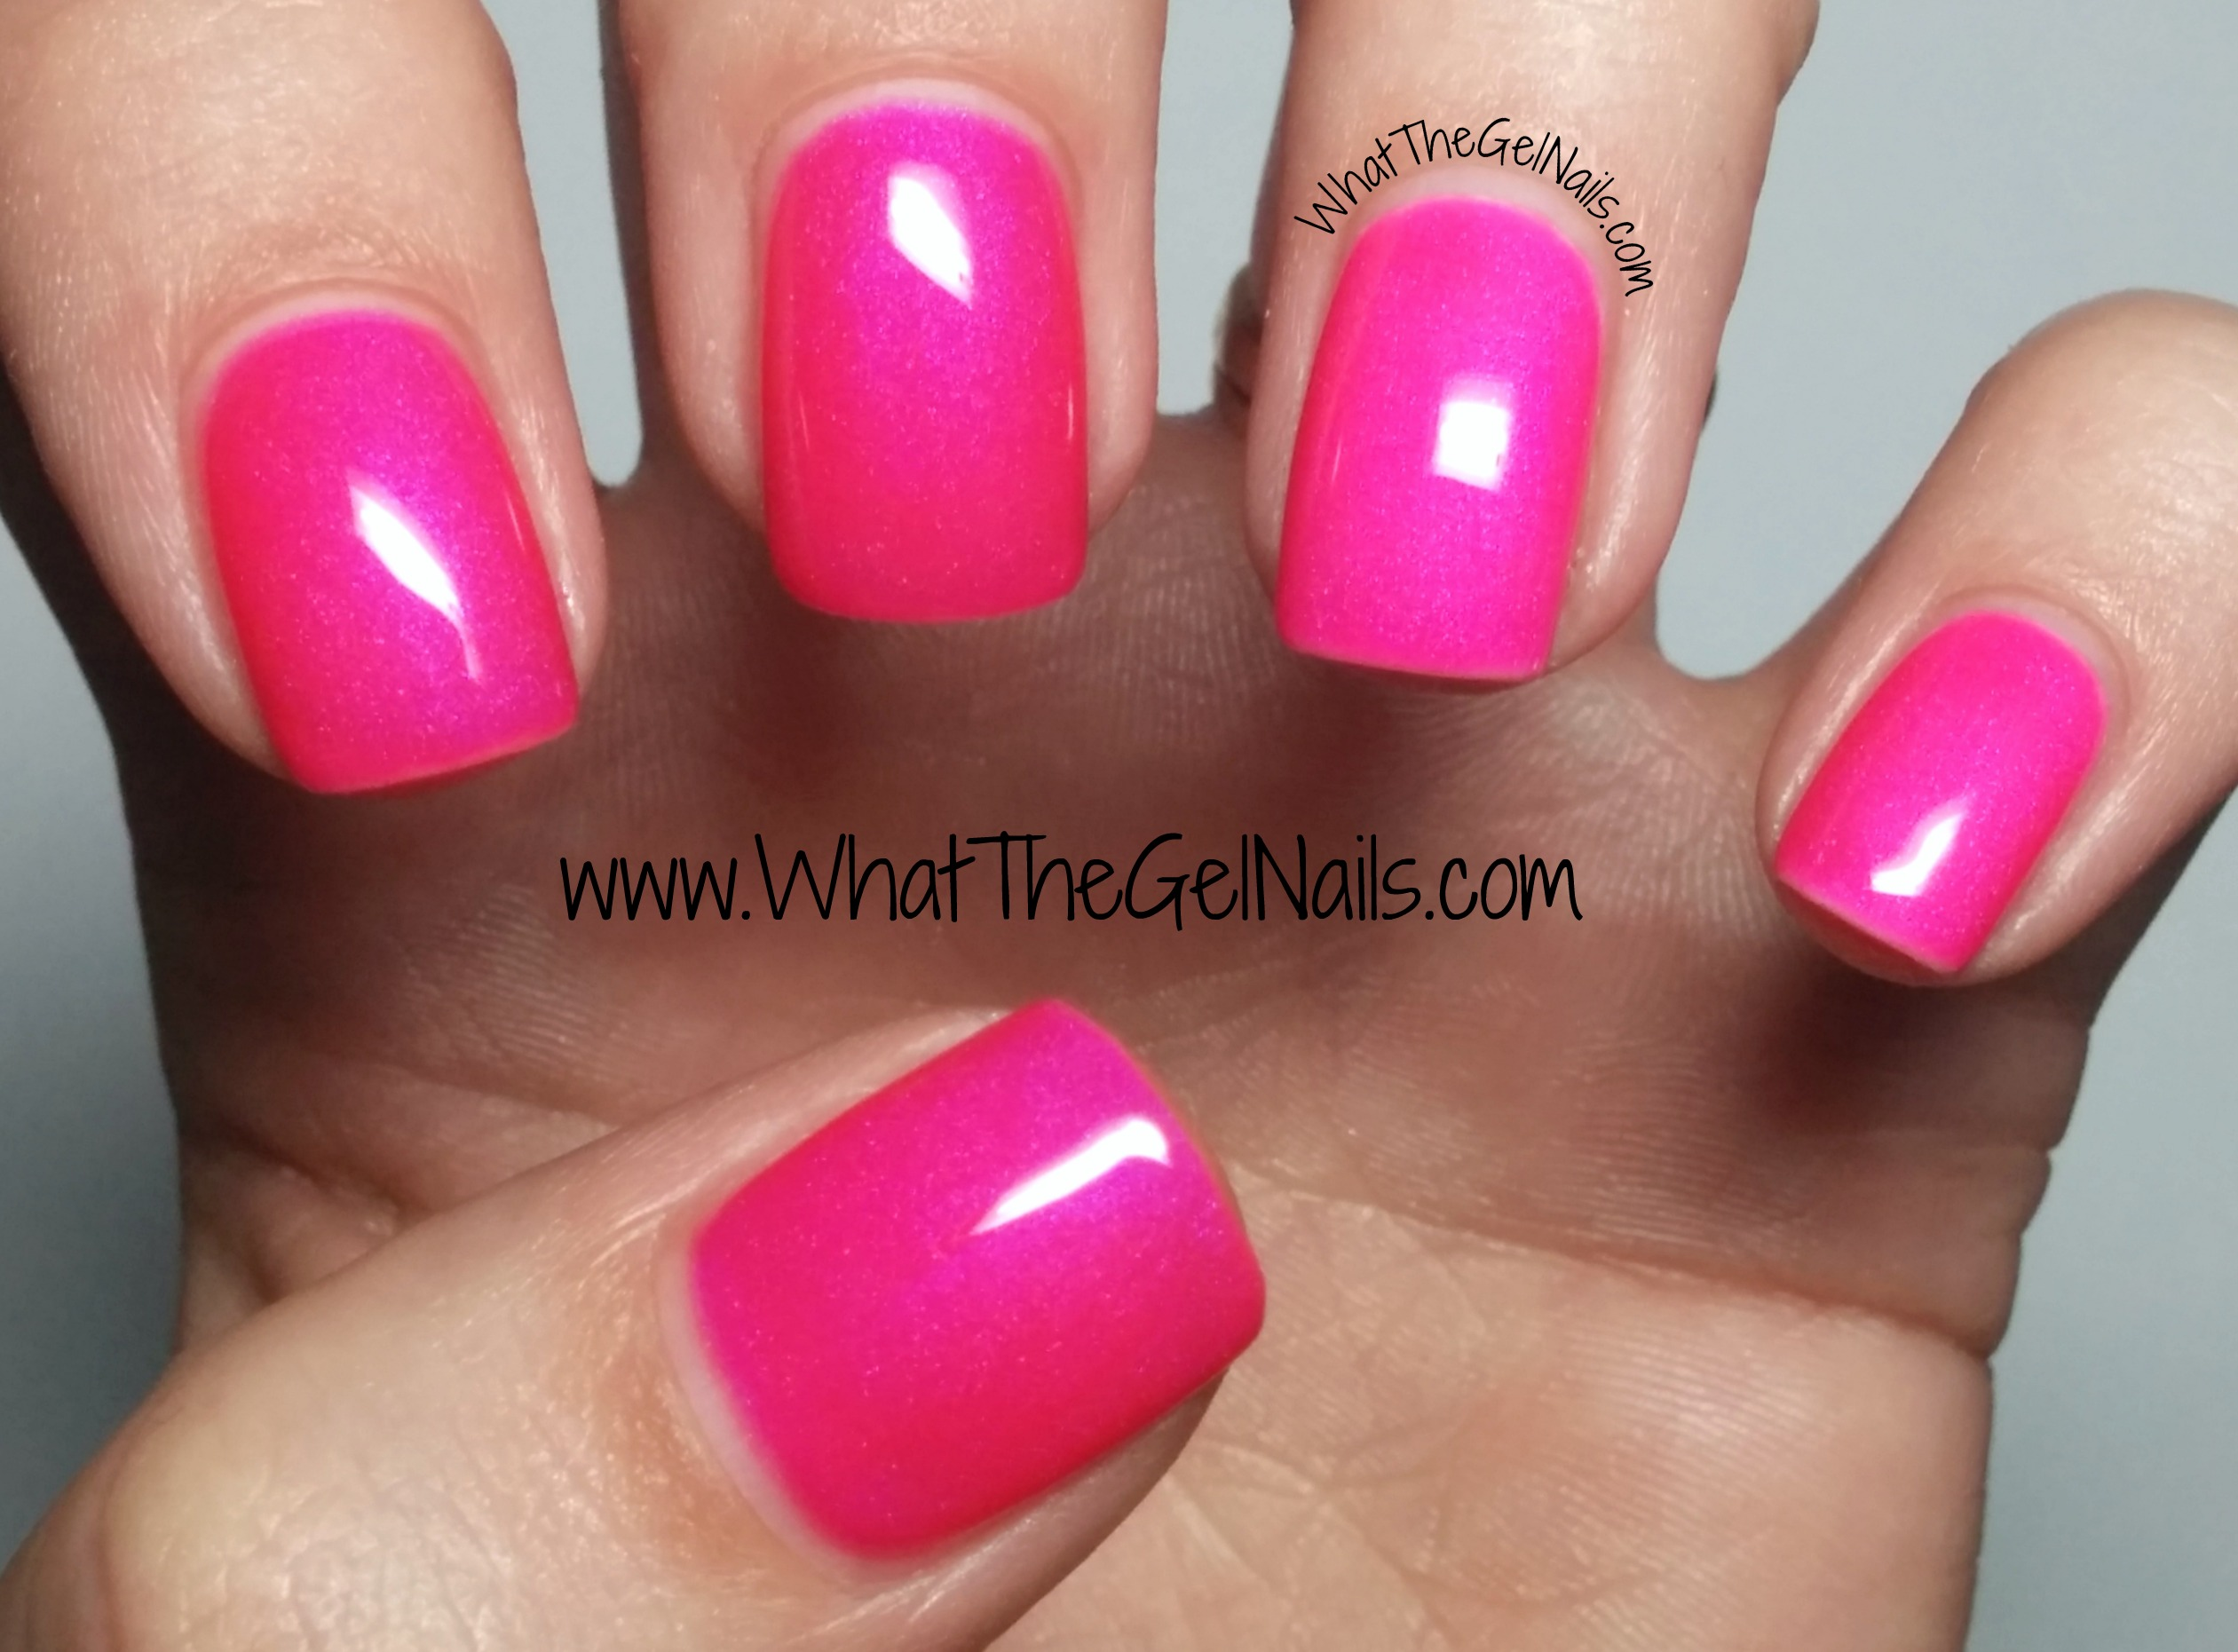 4 Pink IBD Just Gel Nail Polish Colors